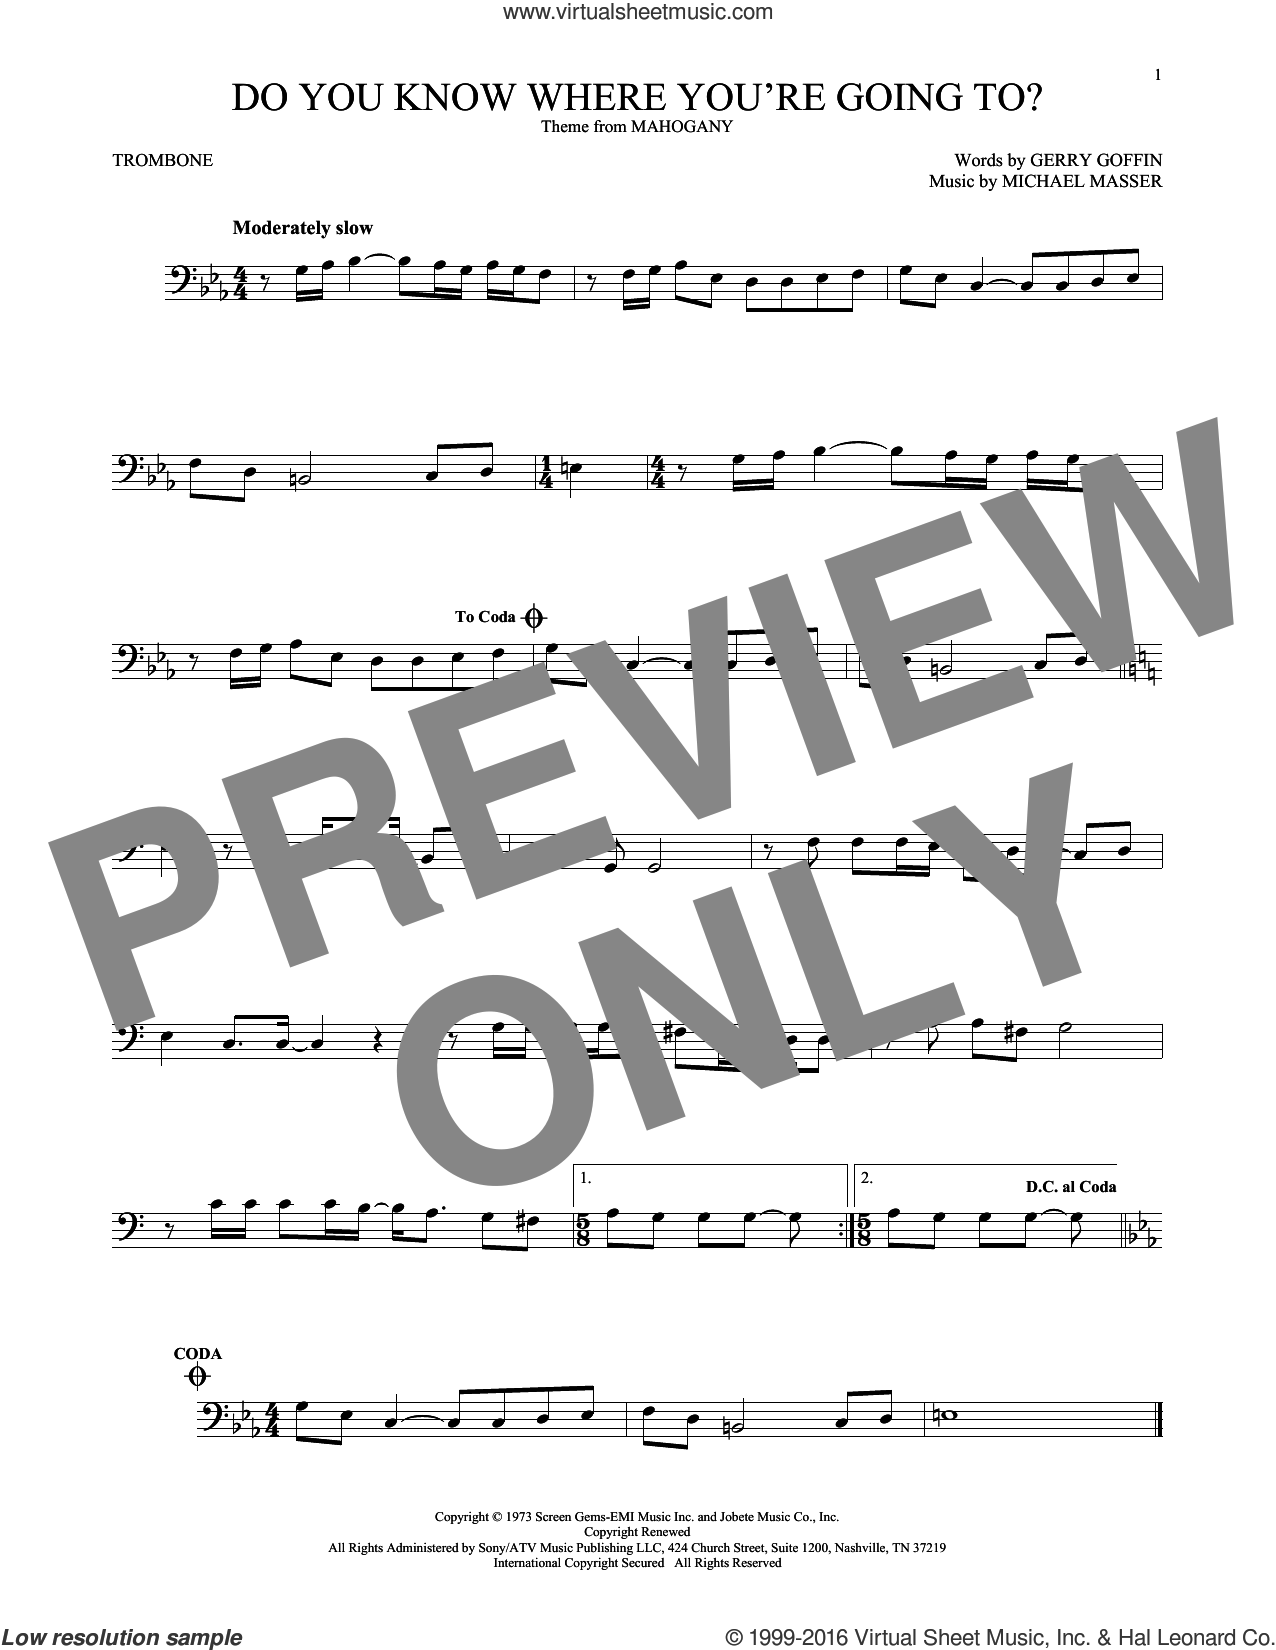 Do You Know Where You're Going To? sheet music for trombone solo by Michael Masser, Diana Ross and Gerry Goffin. Score Image Preview.